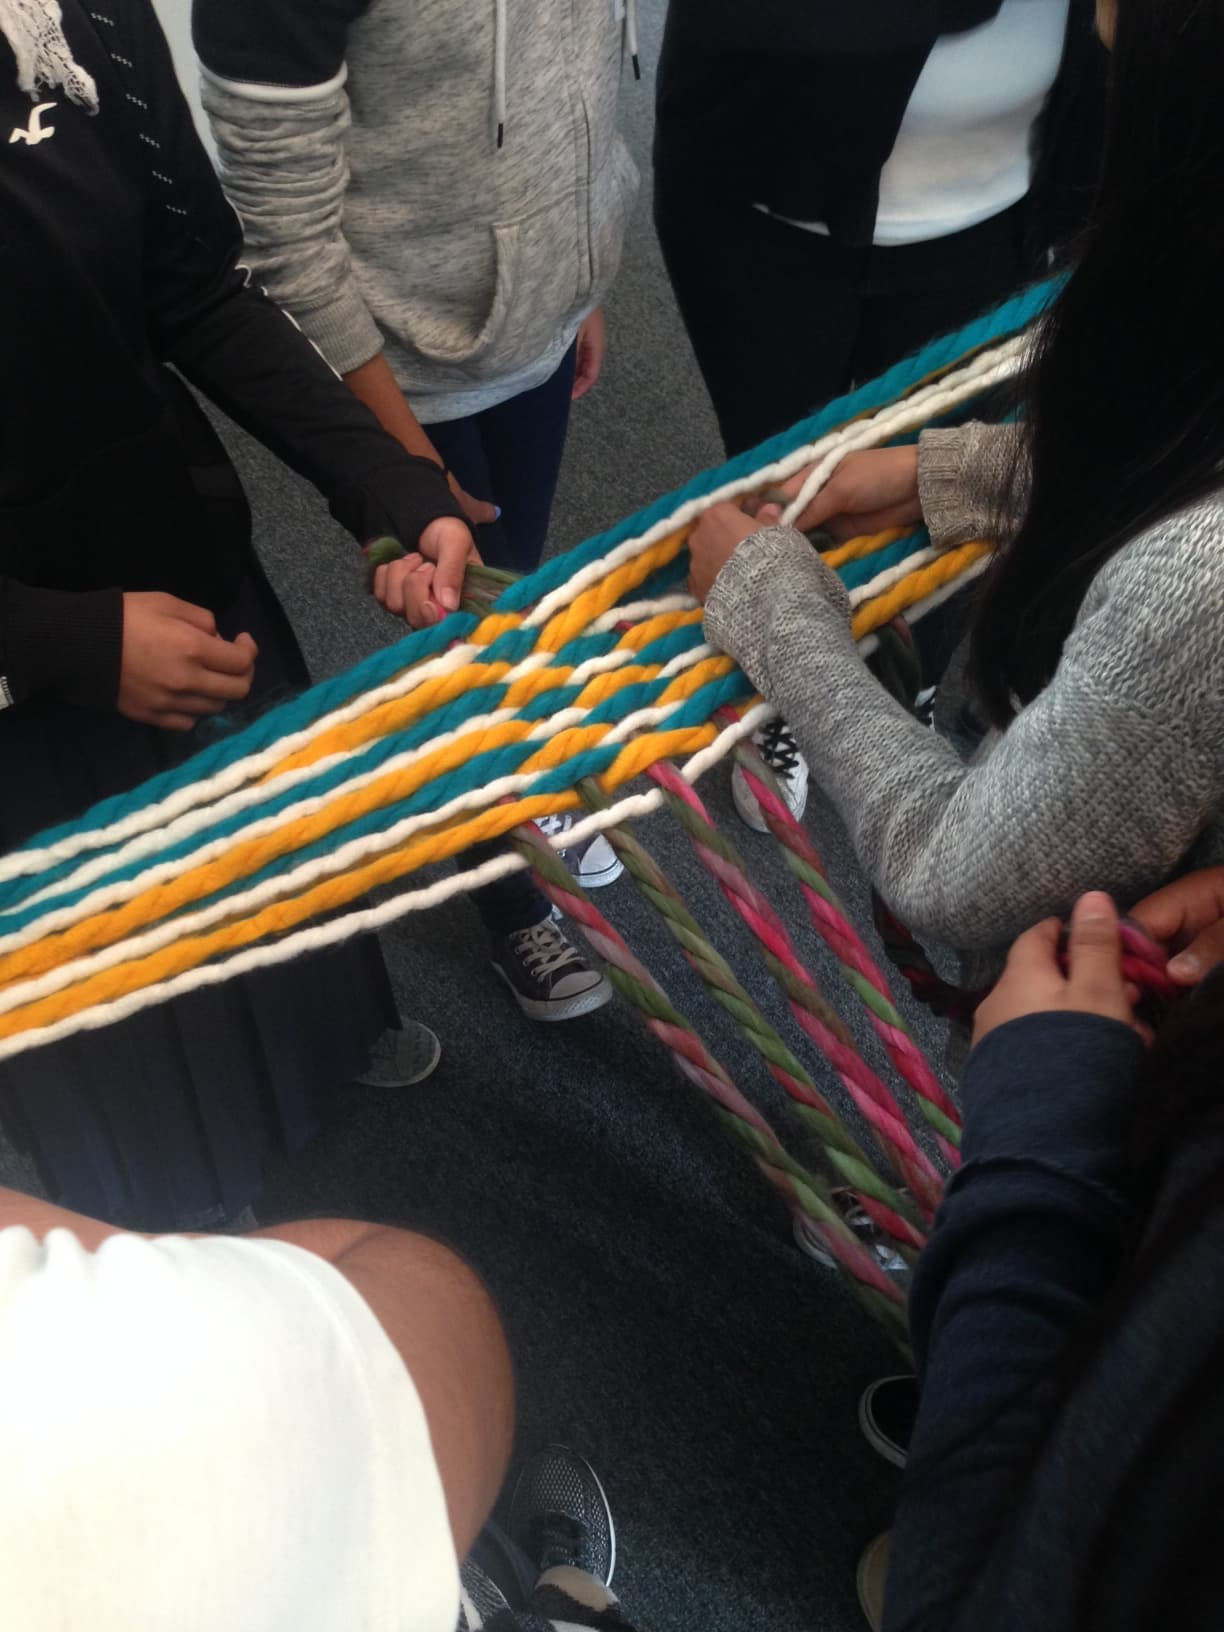 Large human weaving project